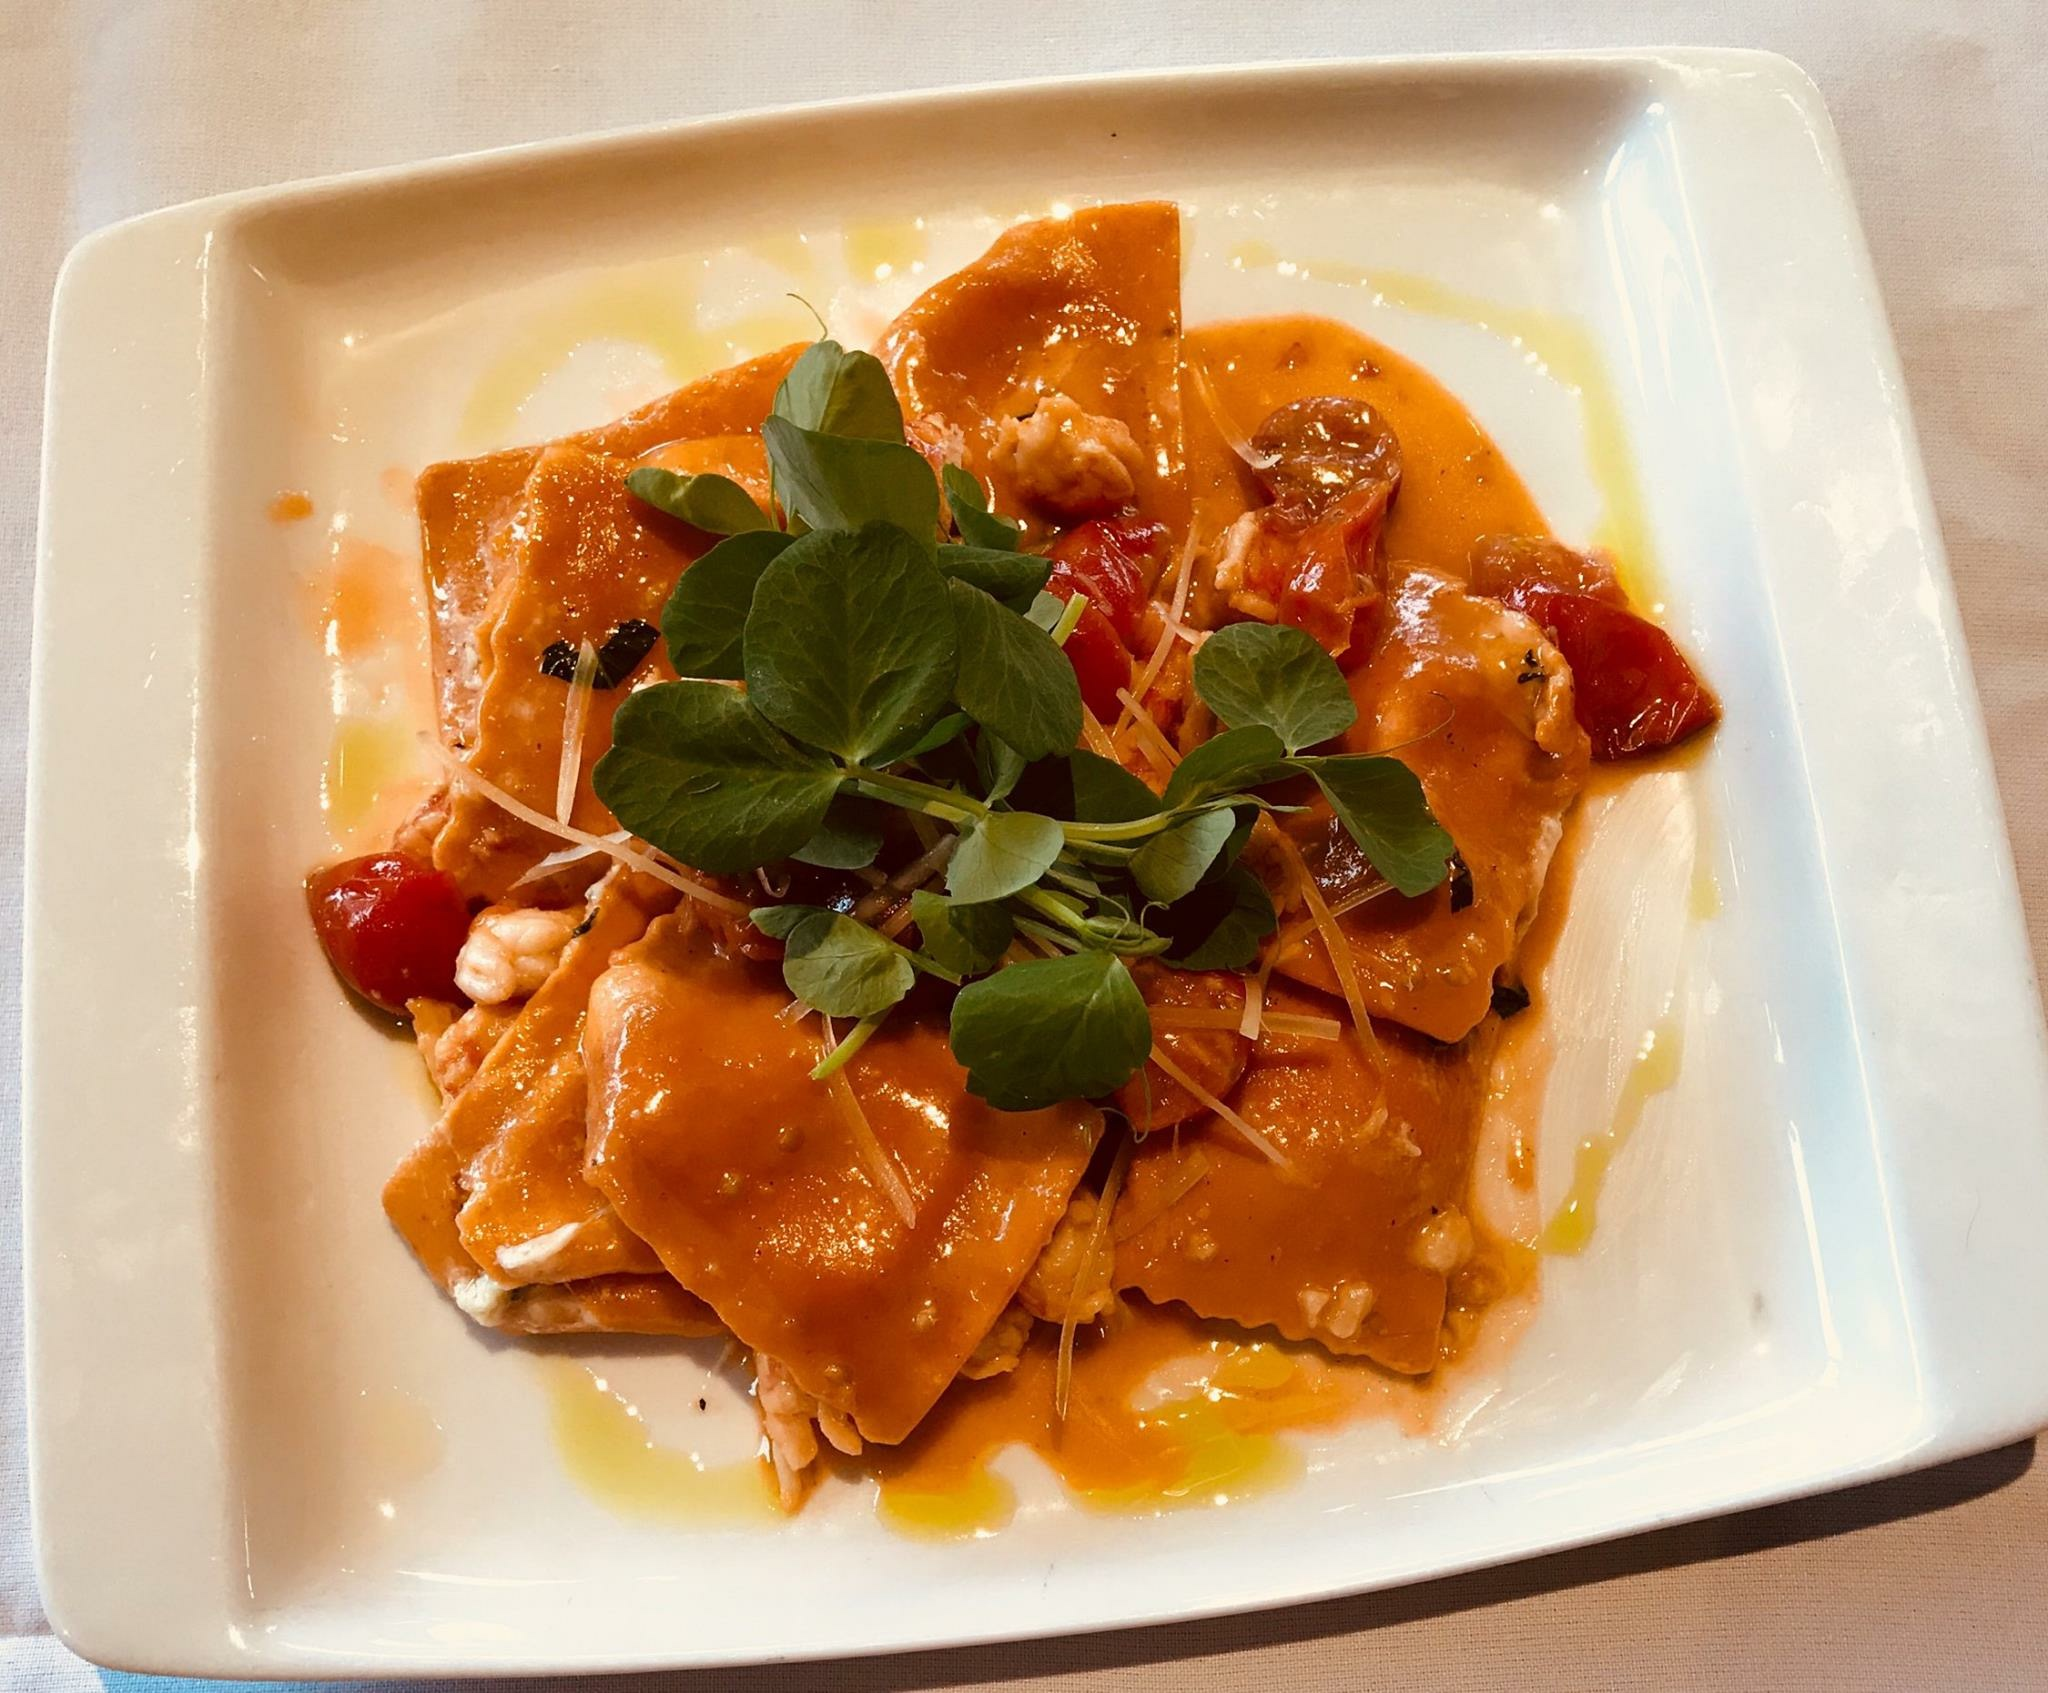 171021 Bay Harbor Sweetest Day Roasted Red Pepper & Smoked Mozzarella Ravioli sauteed with Langoustine Lobster & Heriloom Tomatoes